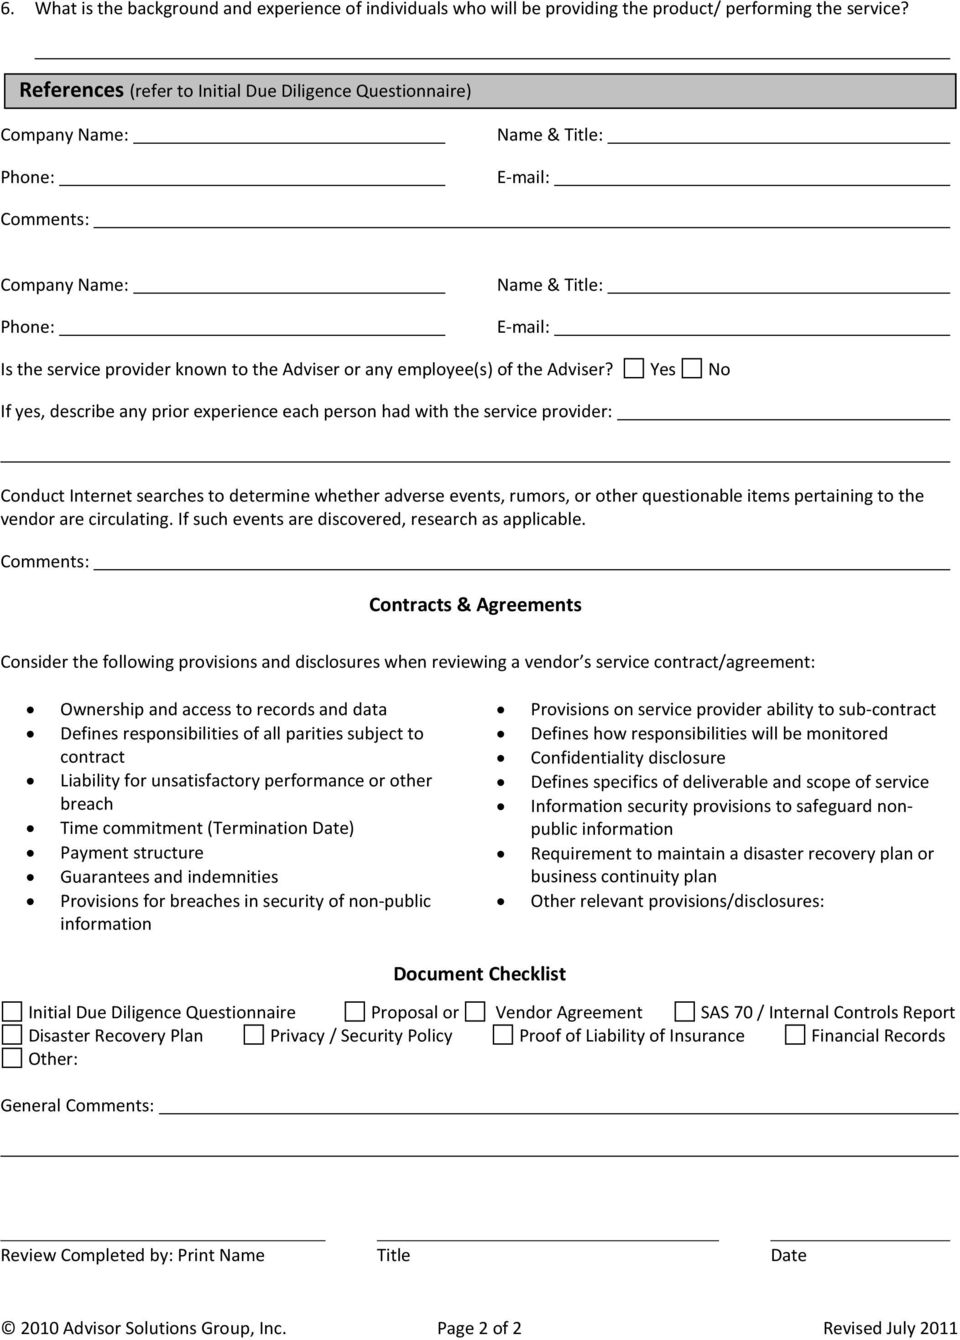 Outsourcing Due Diligence Form Pdf